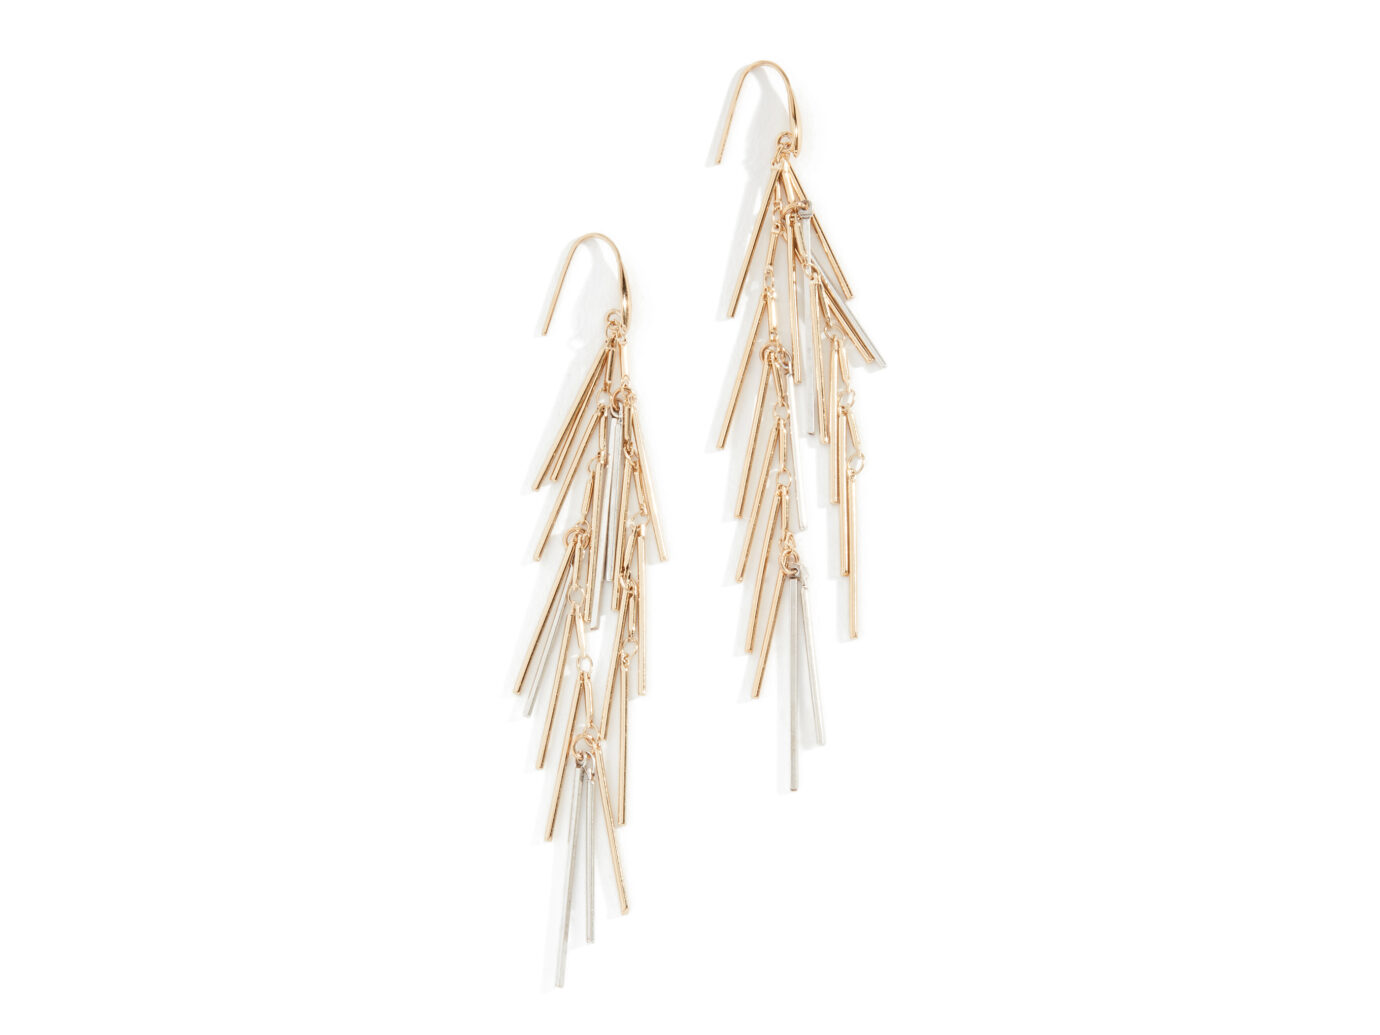 Isabel Marant Good Swung Earrings